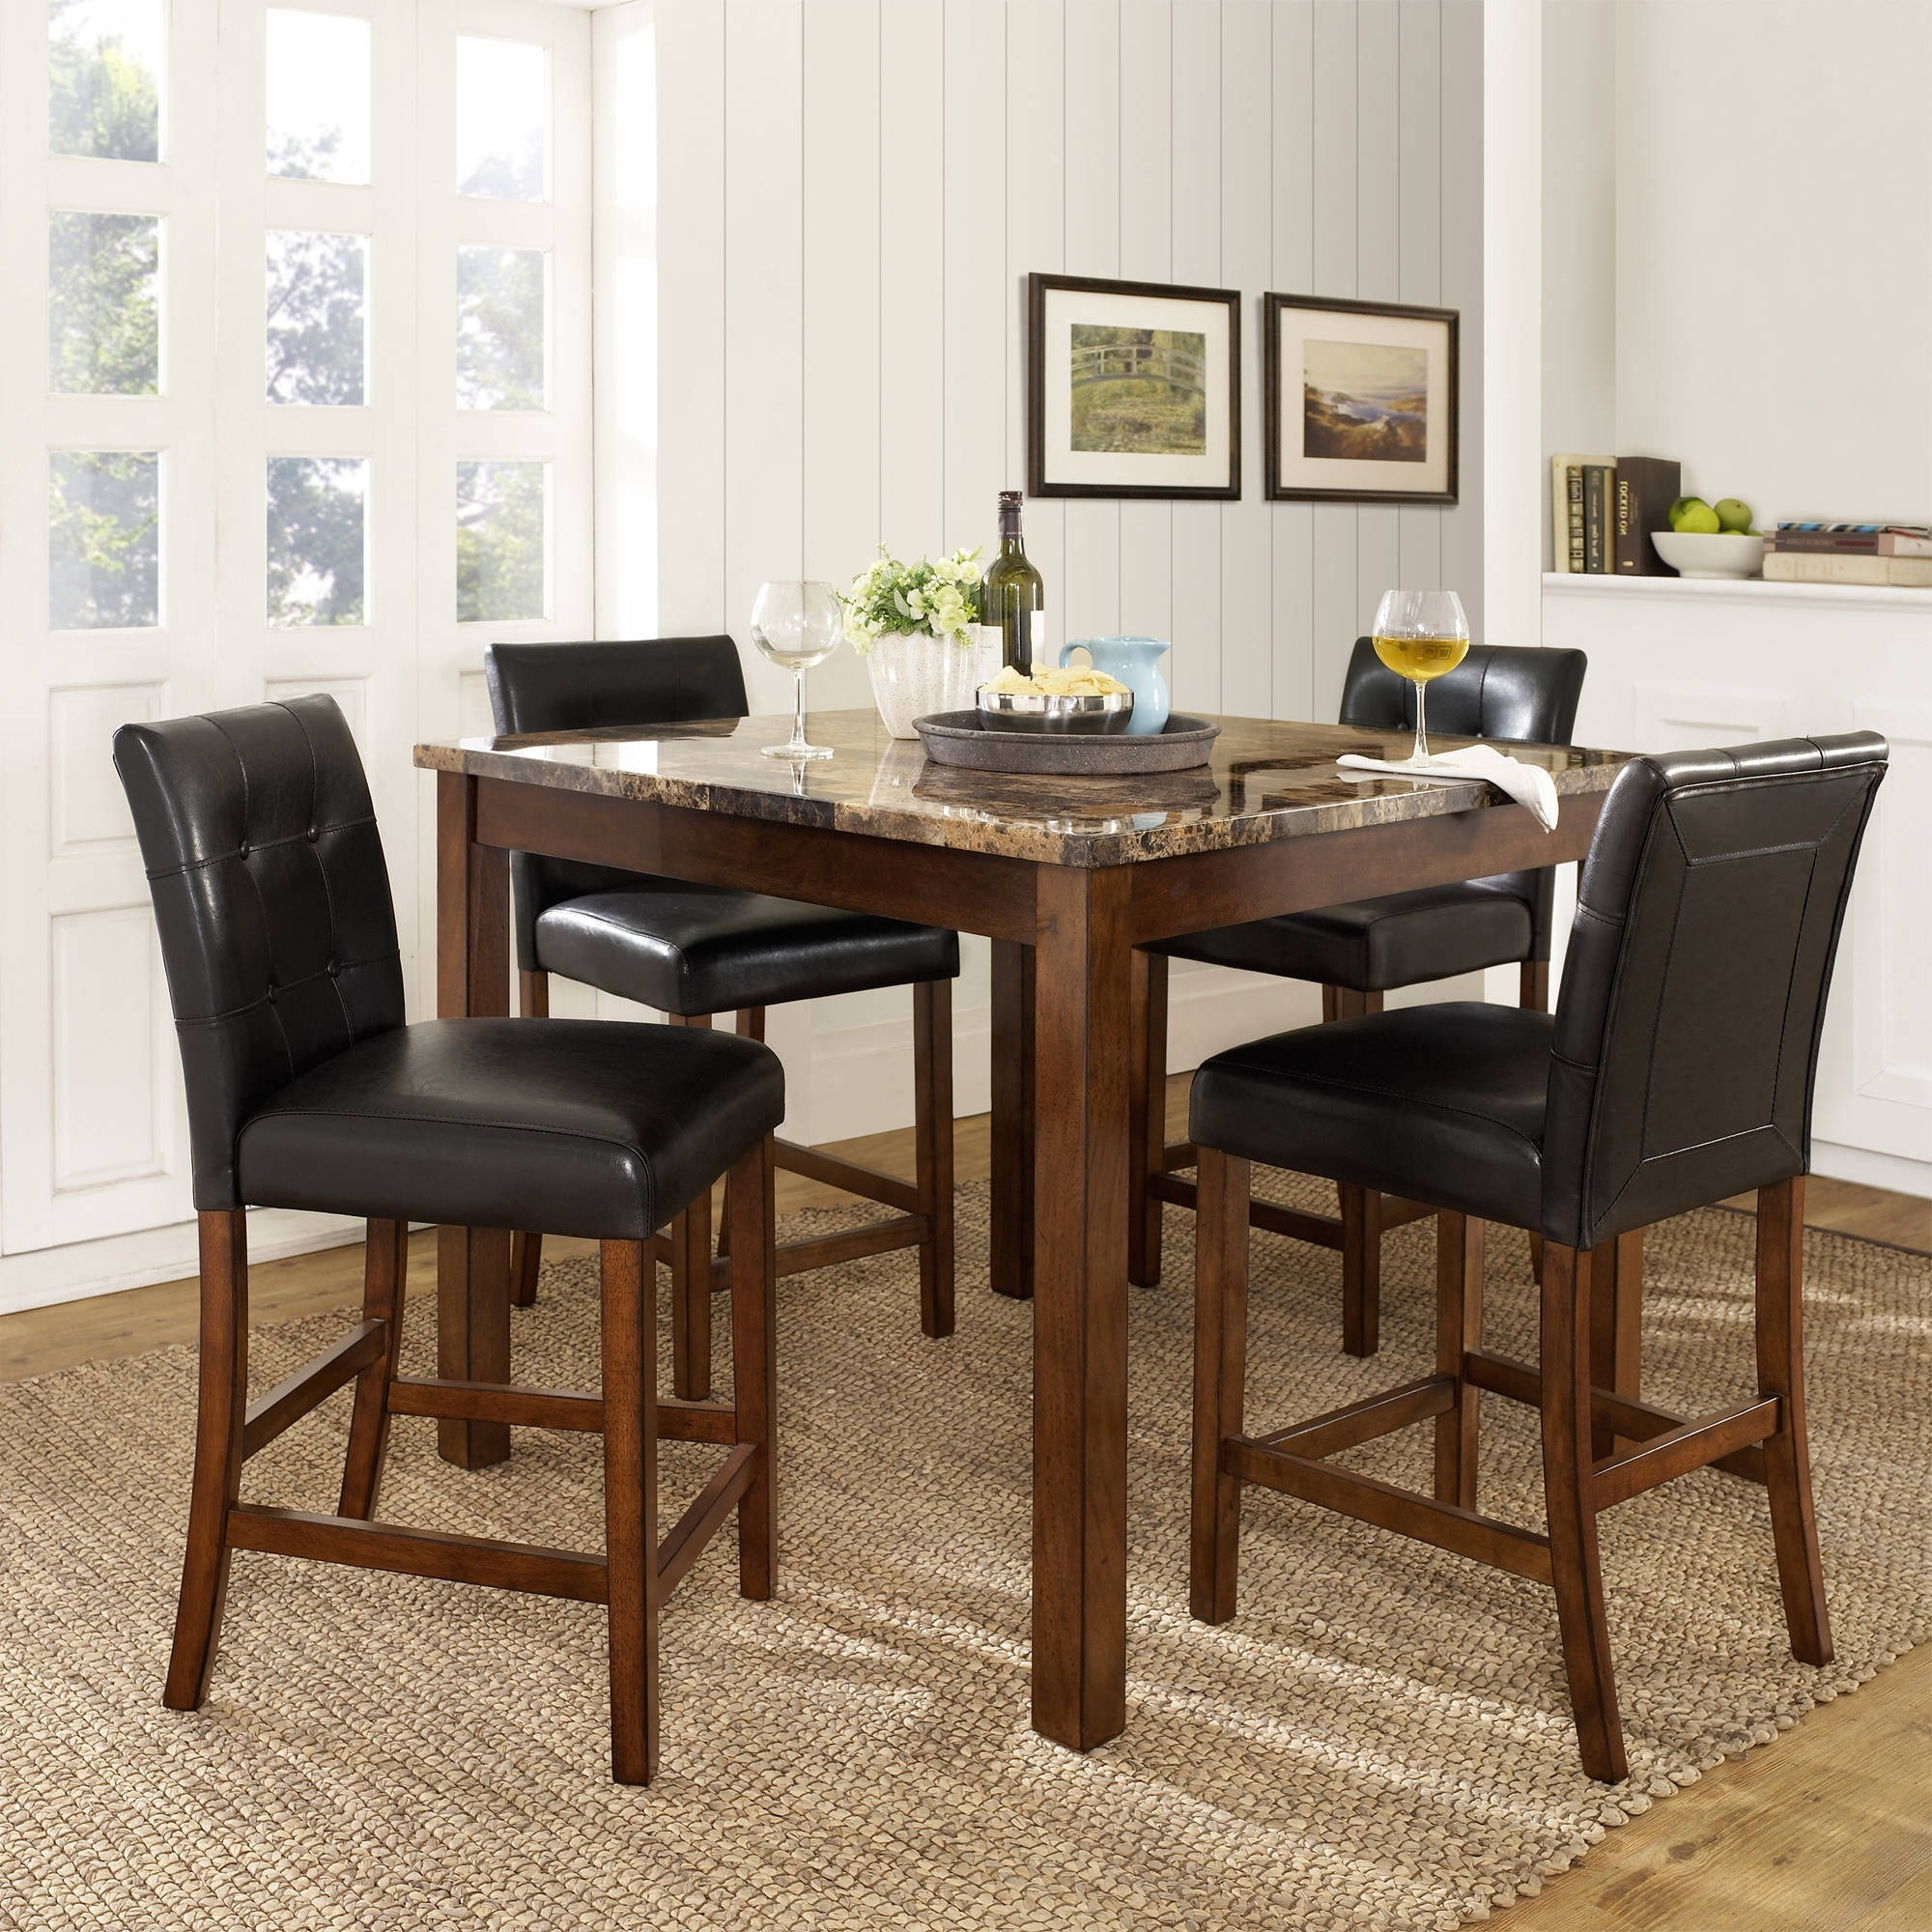 Famous Mainstays 5 Piece Glass Top Metal Dining Set – Walmart For Cheap Dining Room Chairs (View 9 of 25)